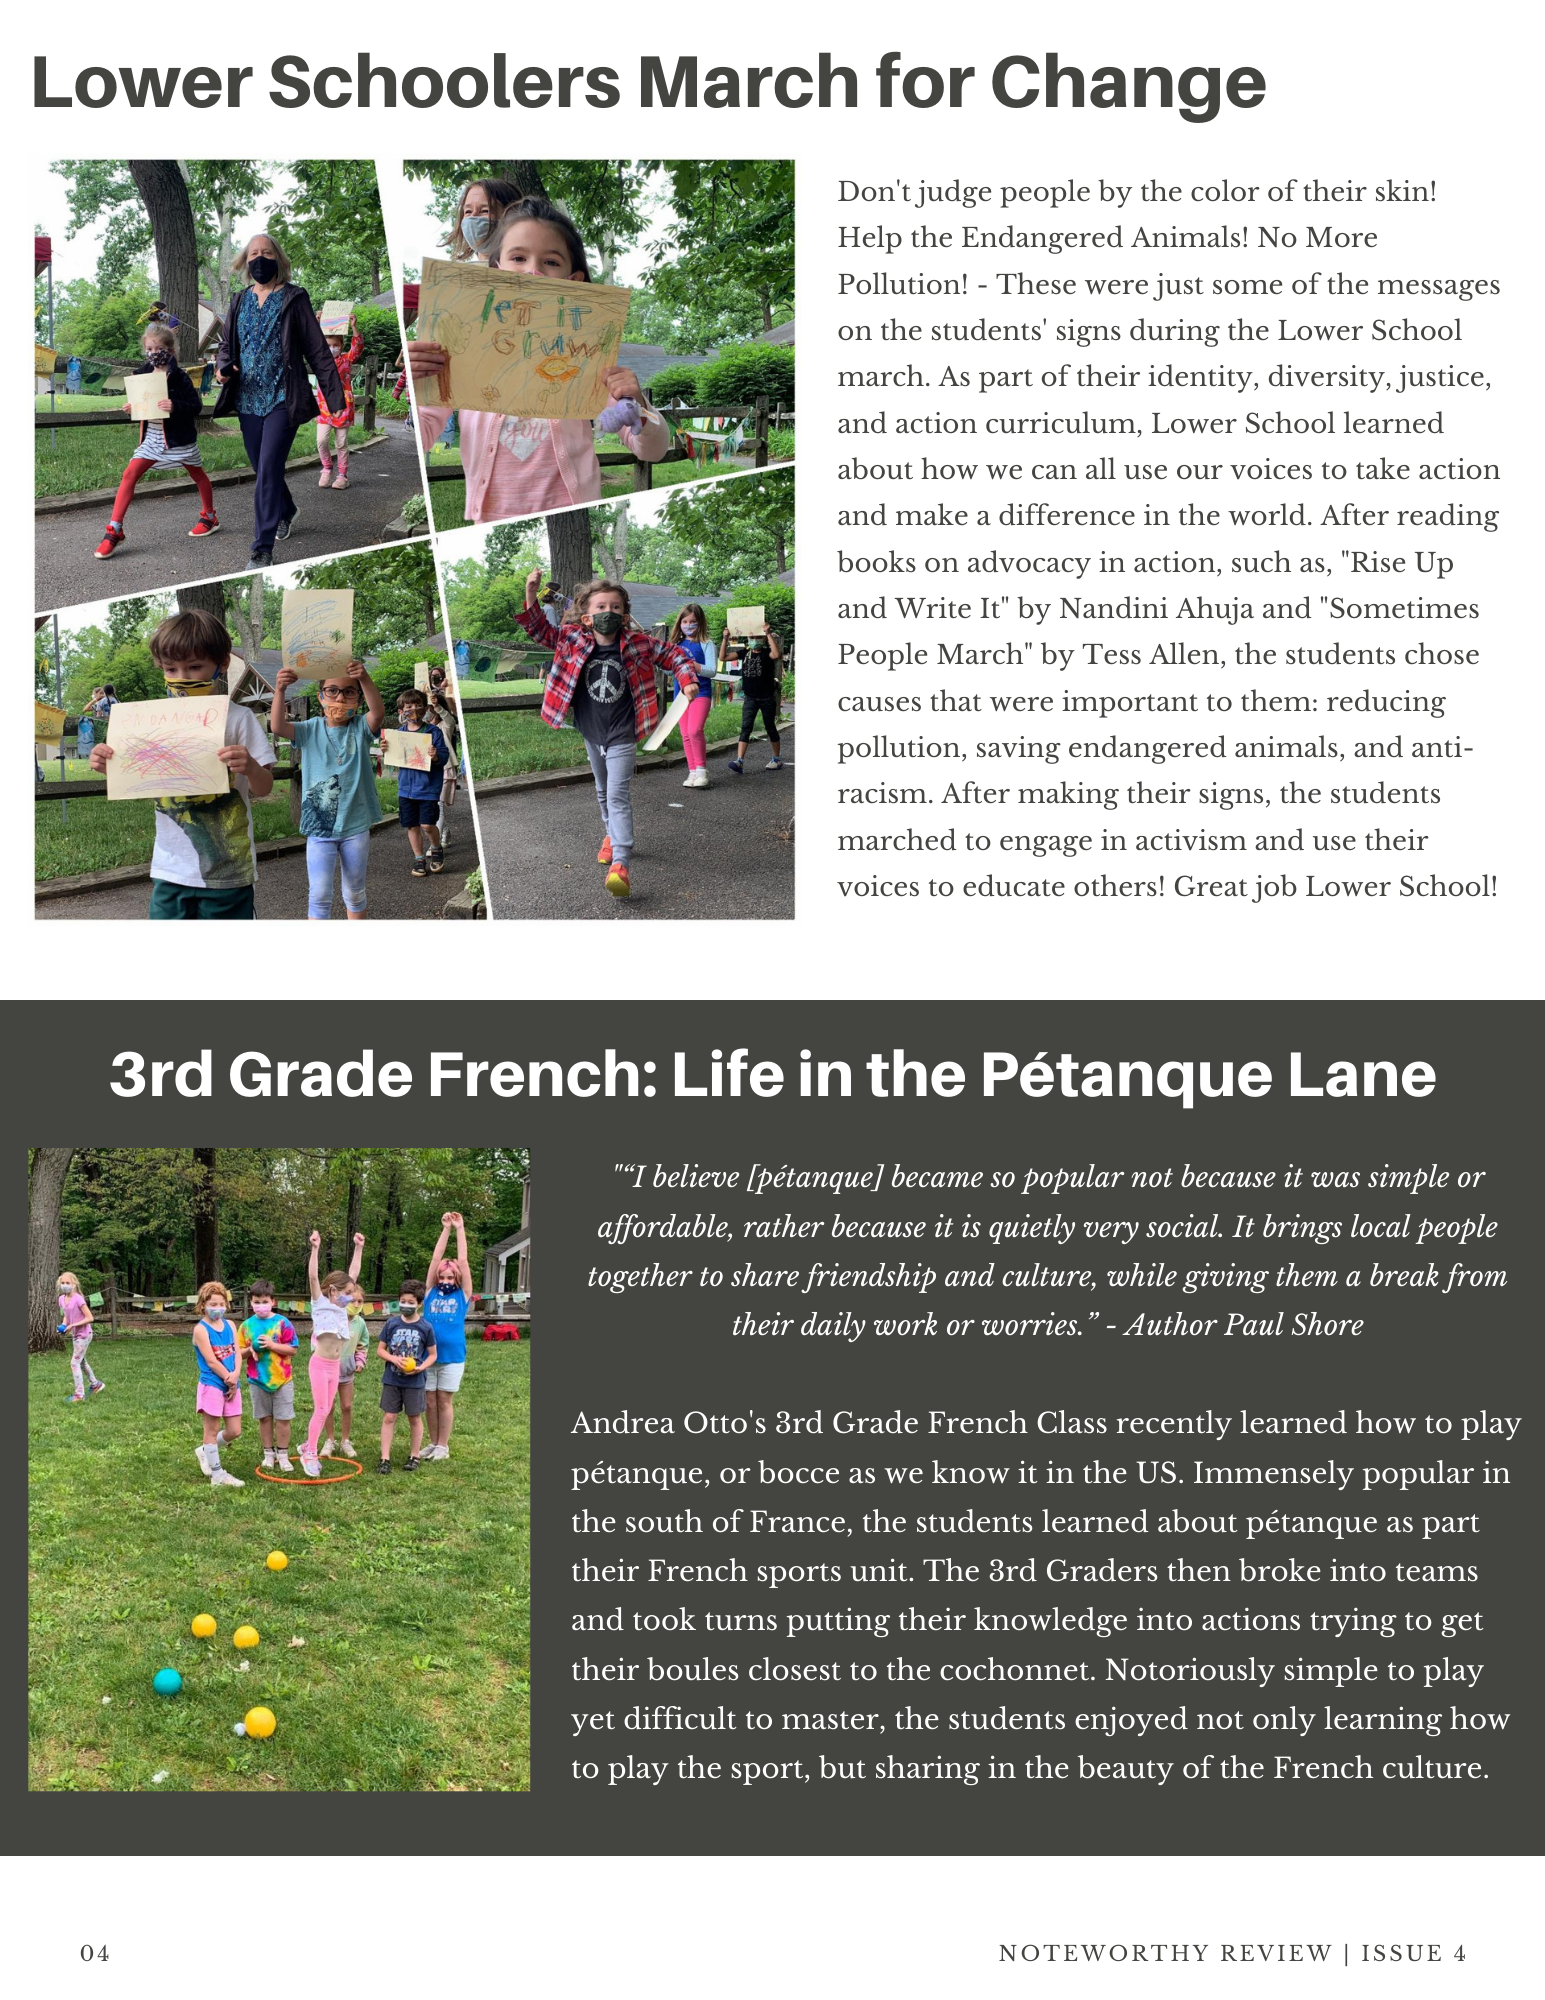 Noteworthy Review - June 2021 - Page 4